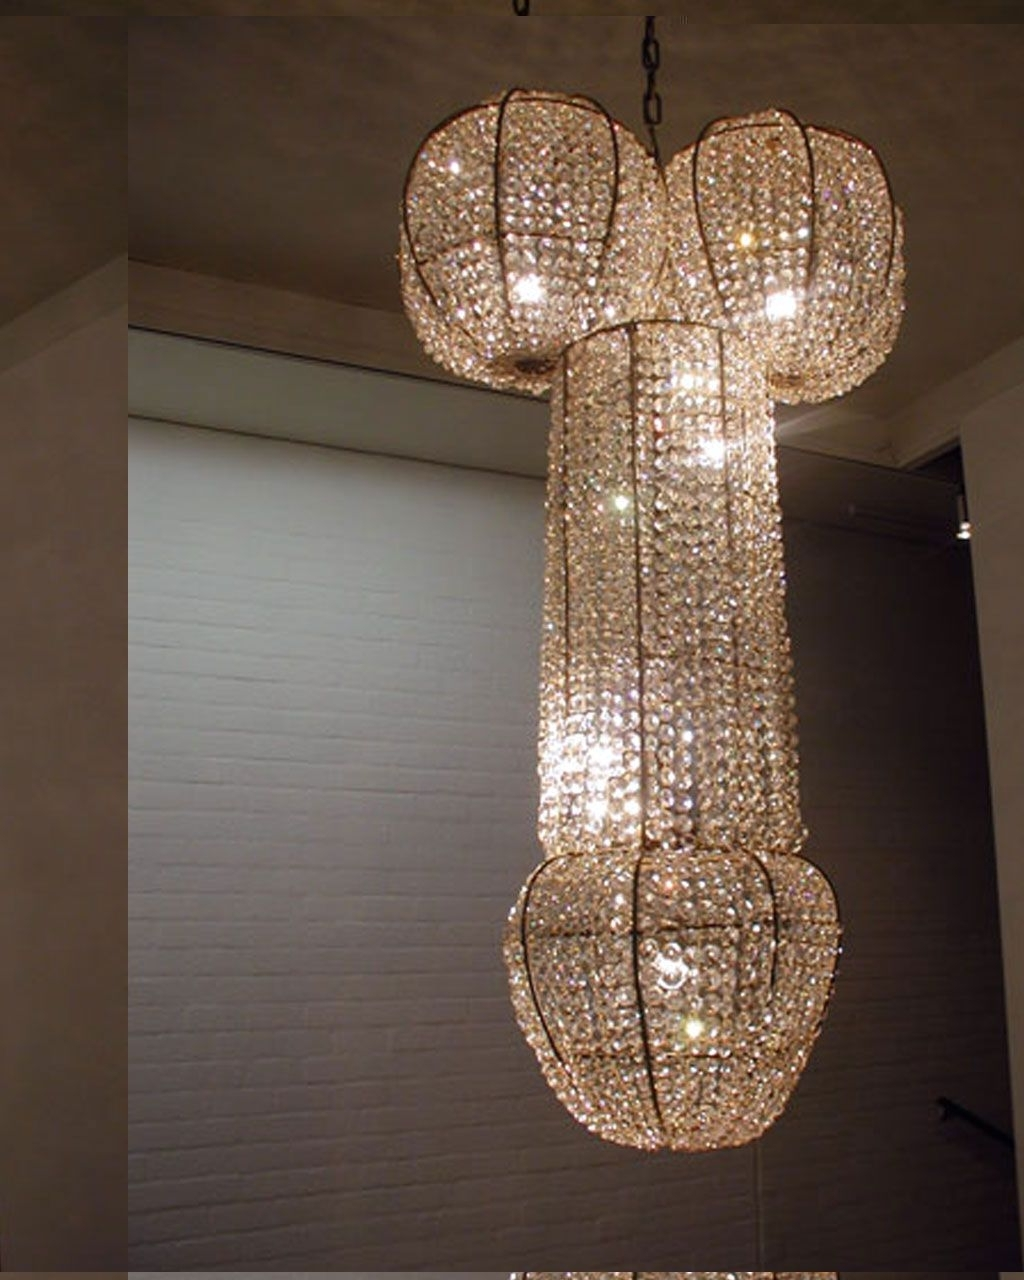 Widely Used Modern Creative Chandeliers Design – Looks More Like A Penis (View 17 of 20)